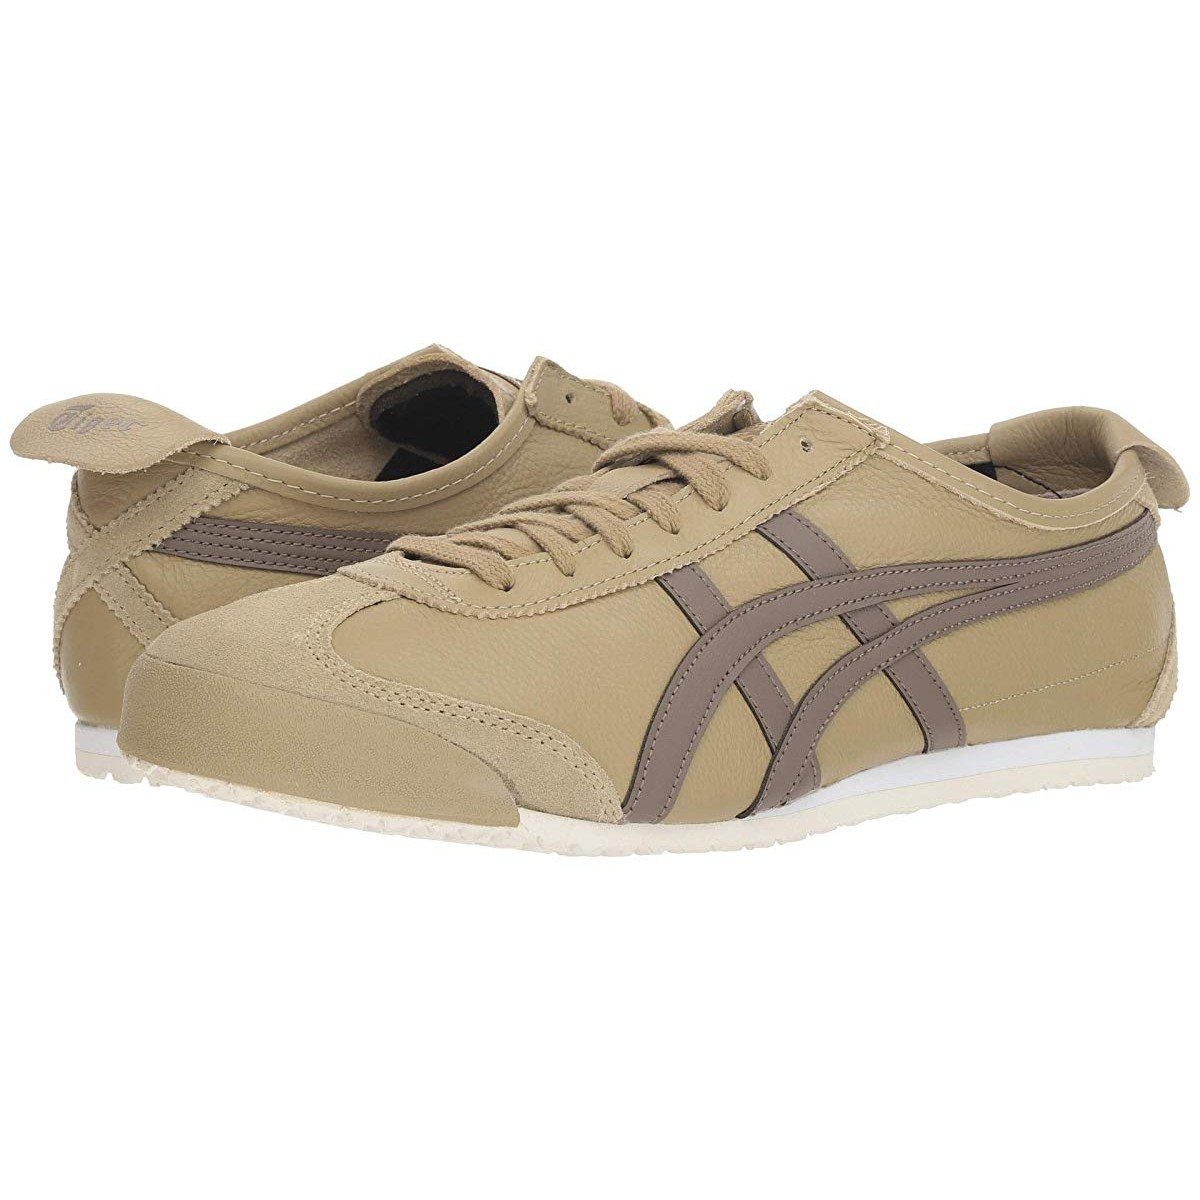 06dc5741 Кроссовки Onitsuka Tiger by Asics Mexico 66 Beige, 36 (225 мм) (10208859